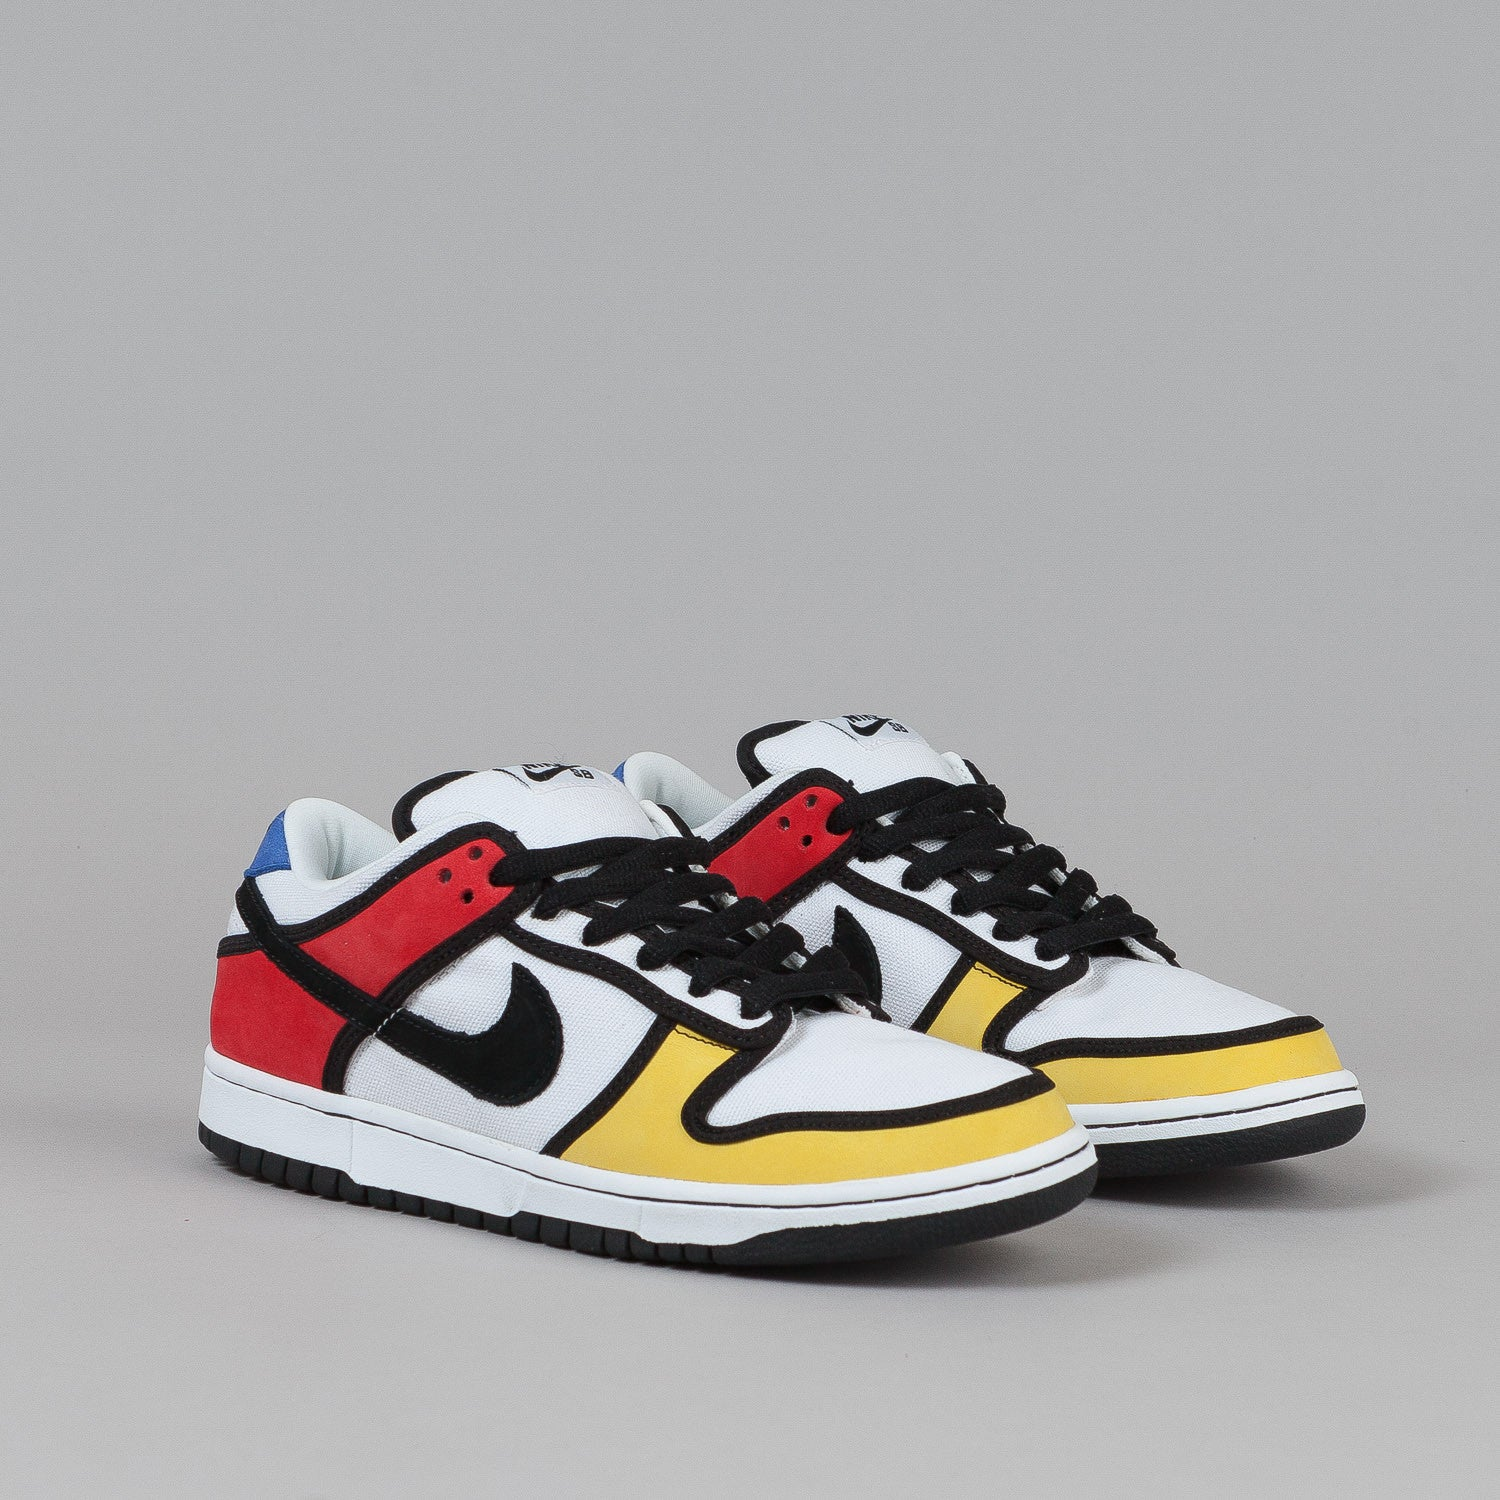 Nike SB Dunk Low Pro Shoes - Zest / Black